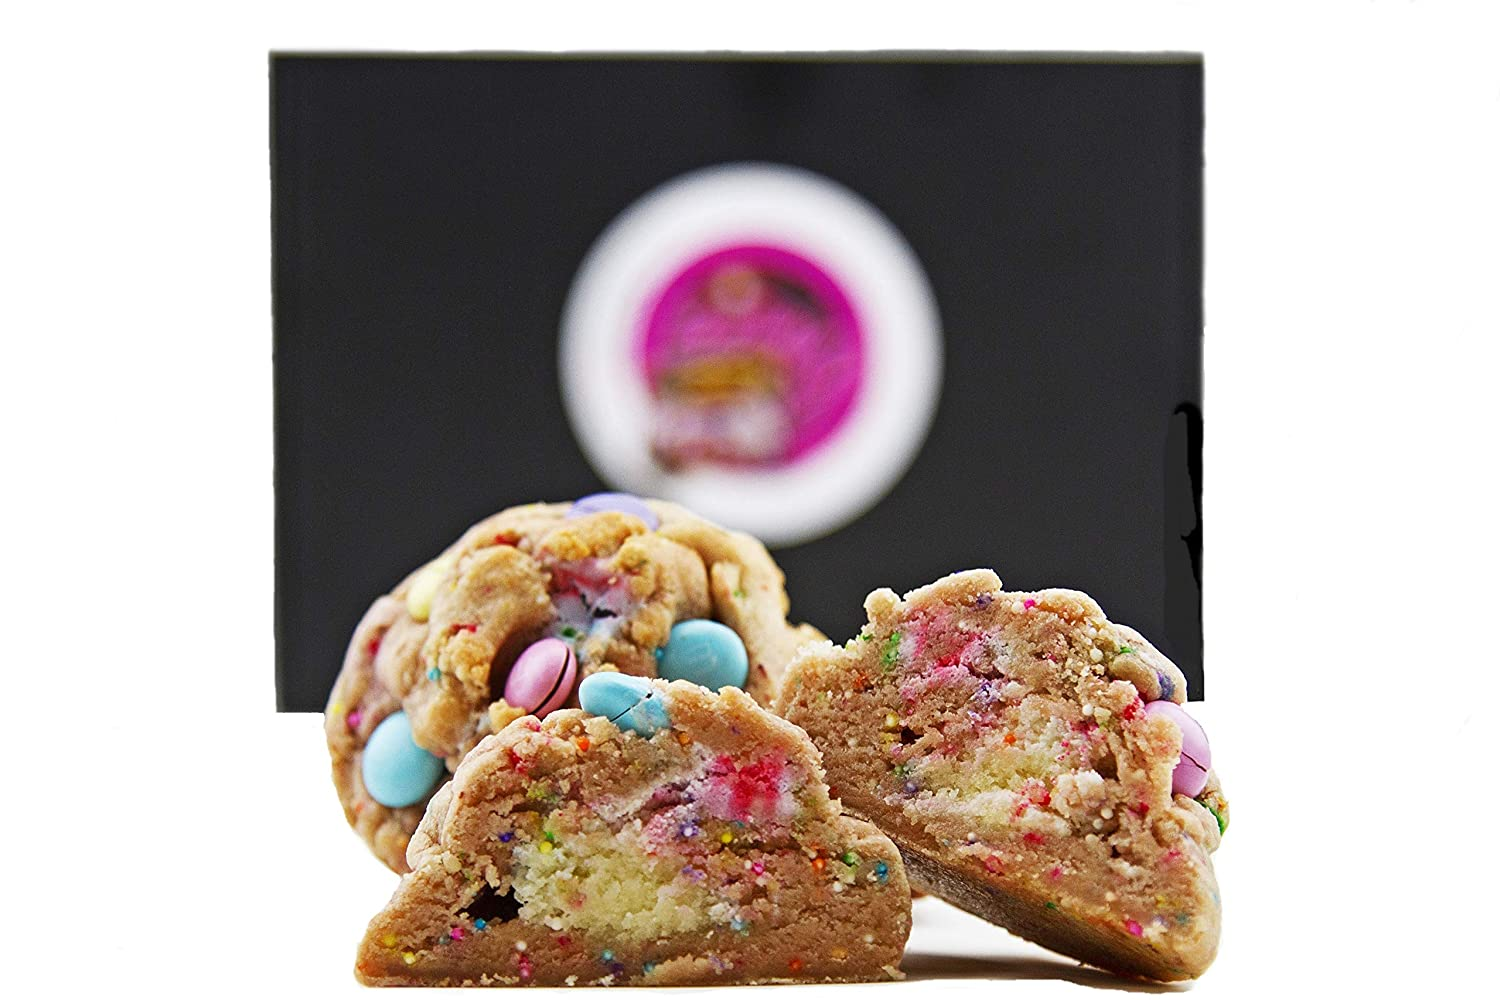 Baby g's Cookies Birthday Cake Easter Cookie Gift Basket Gourmet Desserts for Delivery-Fresh Baked Food Gift Box 2 Lb. Individually Wrapped Stuffed, M & M's Celebration Corporate Families'